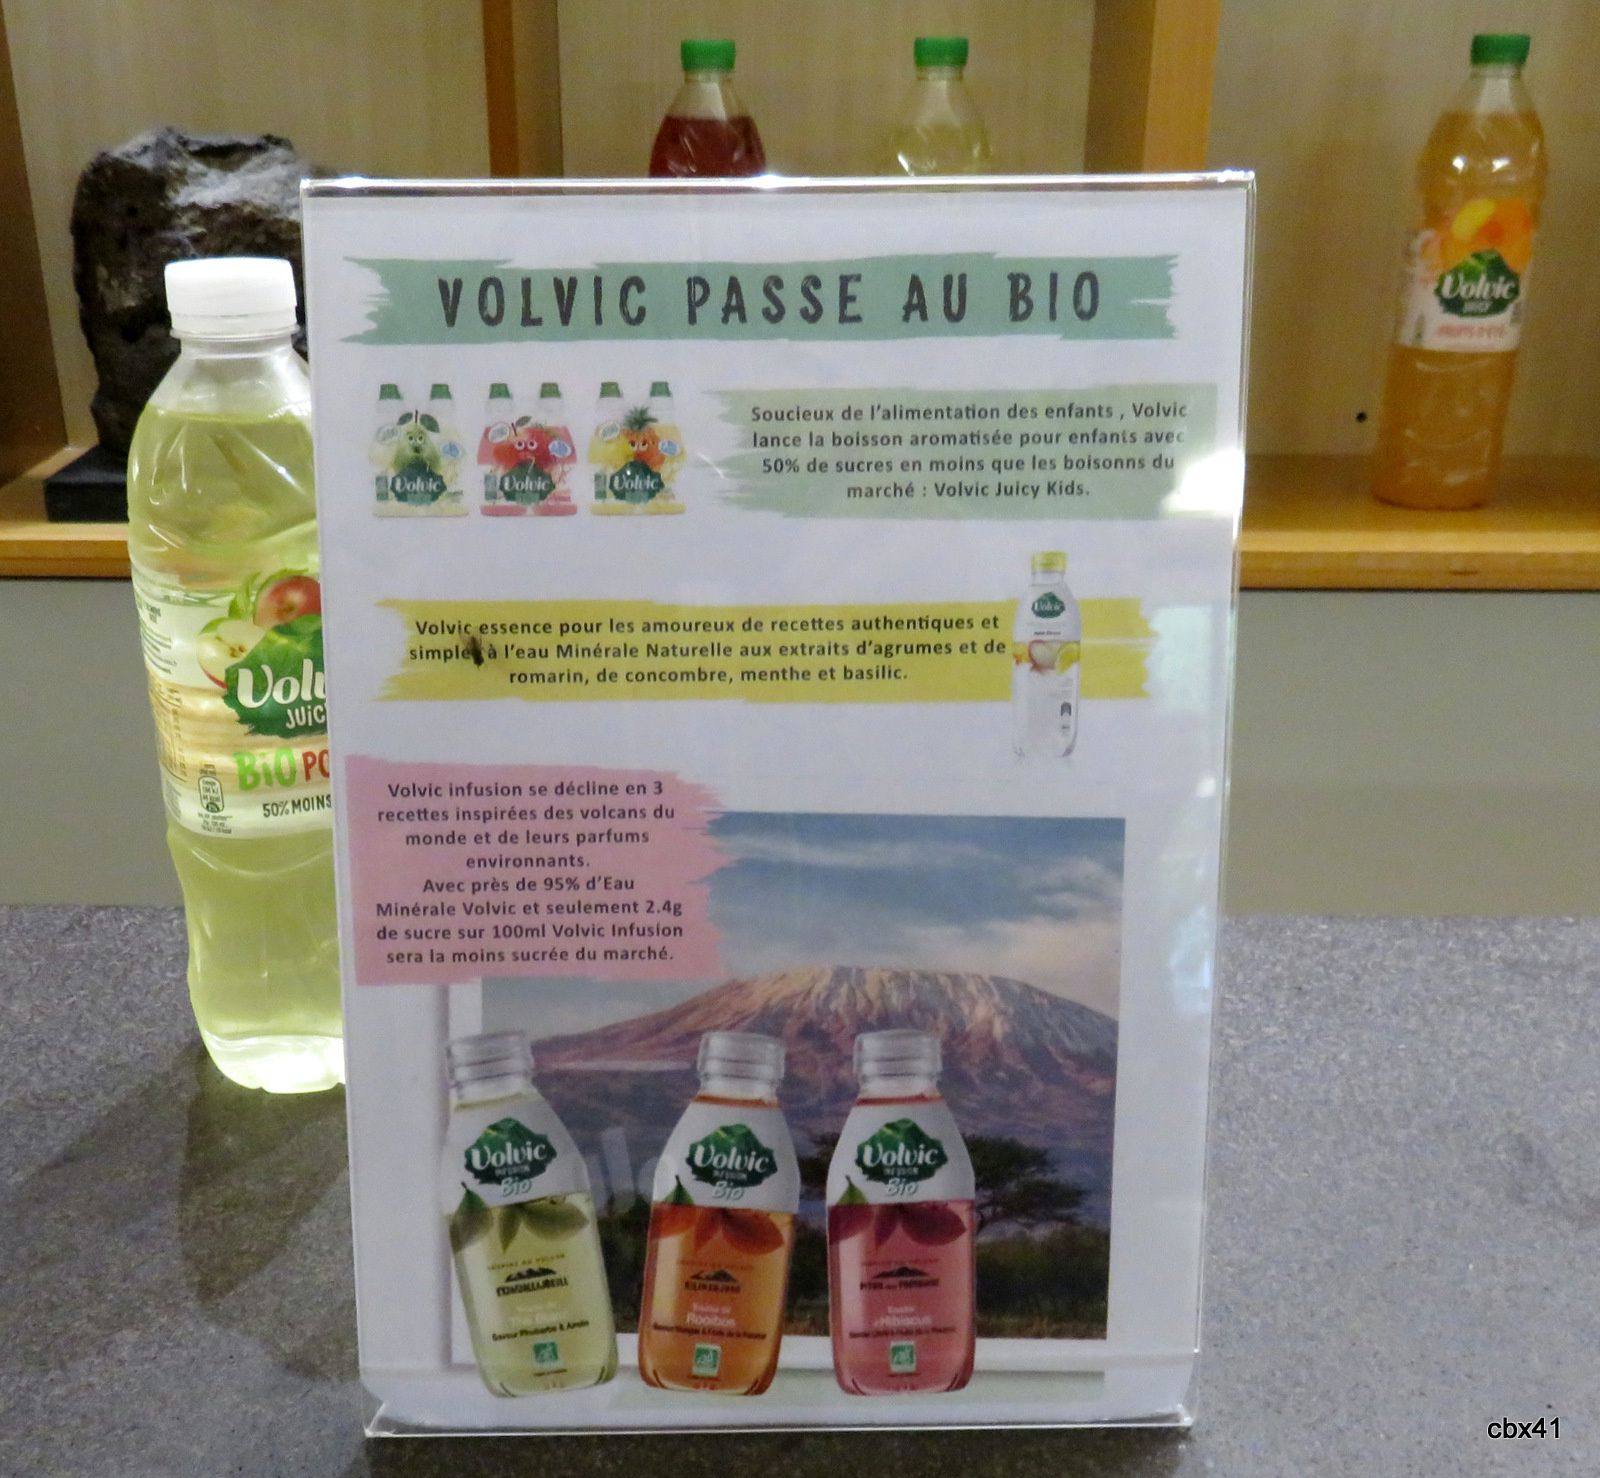 Volvic, La source